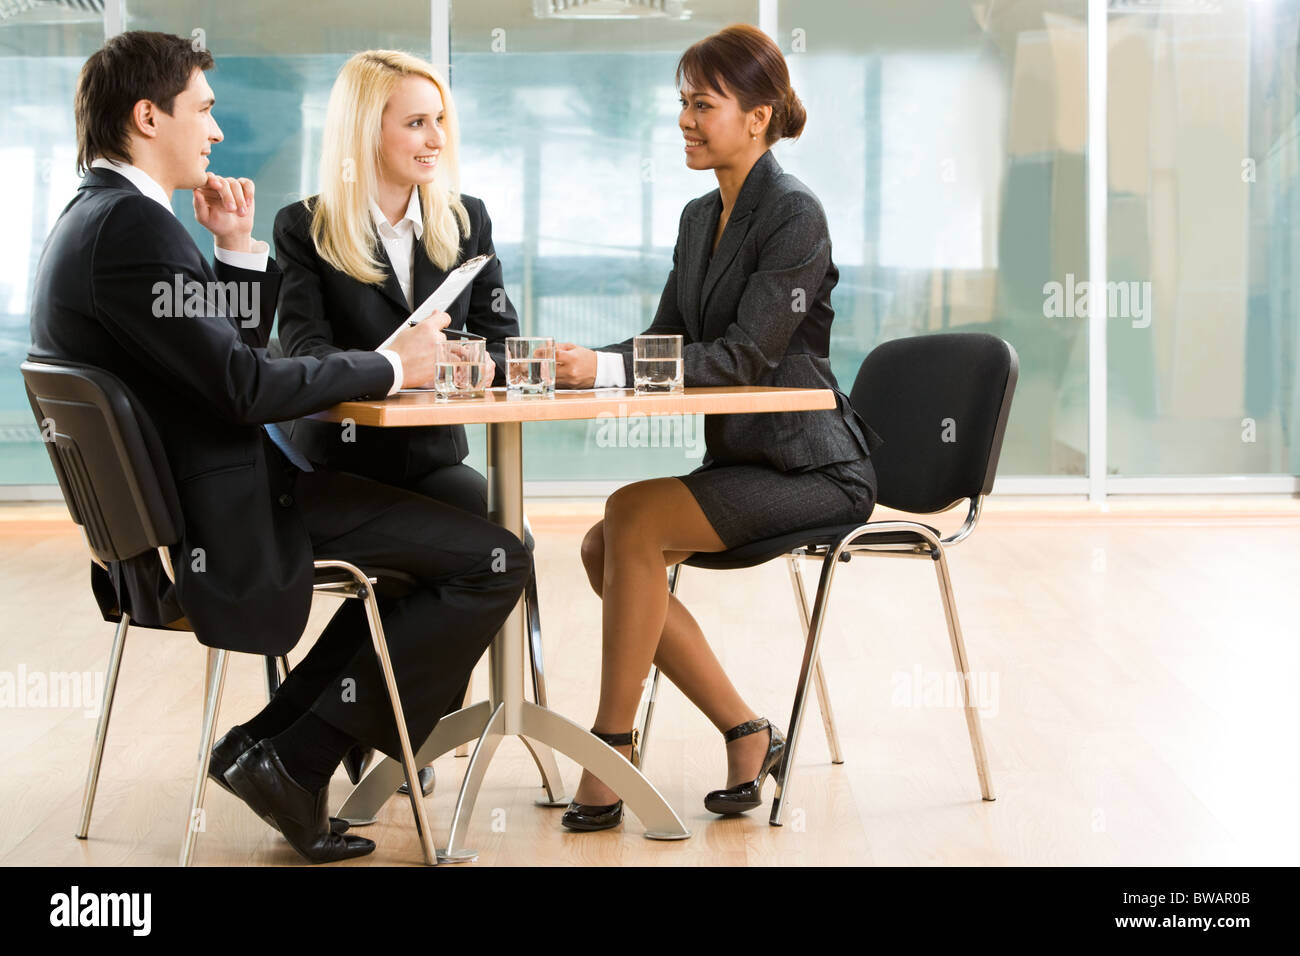 Three business partners discussing important affairs at working meeting - Stock Image